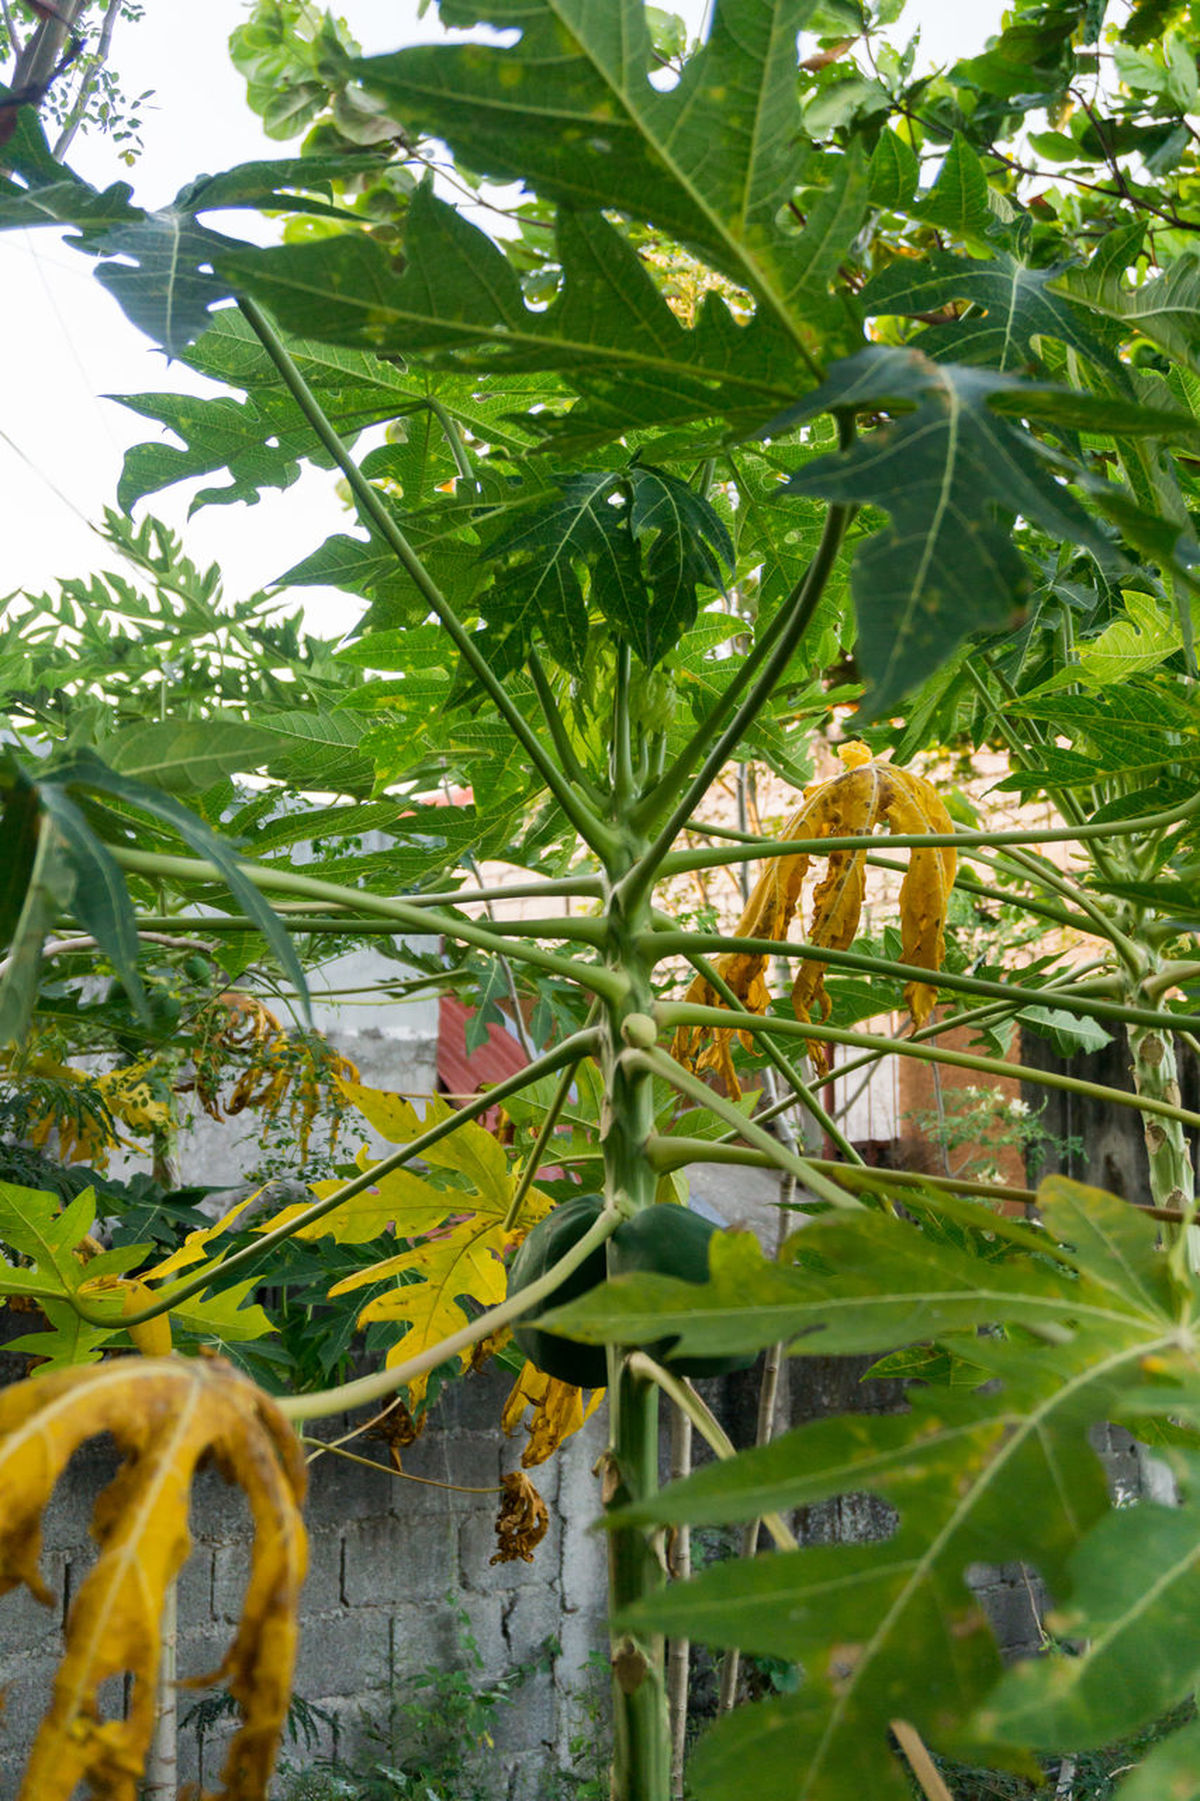 Jack fruit on a tree in a rural settine in the Philippines 2017 Focus On Foreground Fruits Jack Fruit/lanka Outdoor Outdoor Photography Outdoors People Rural Collection Tropical Fruits